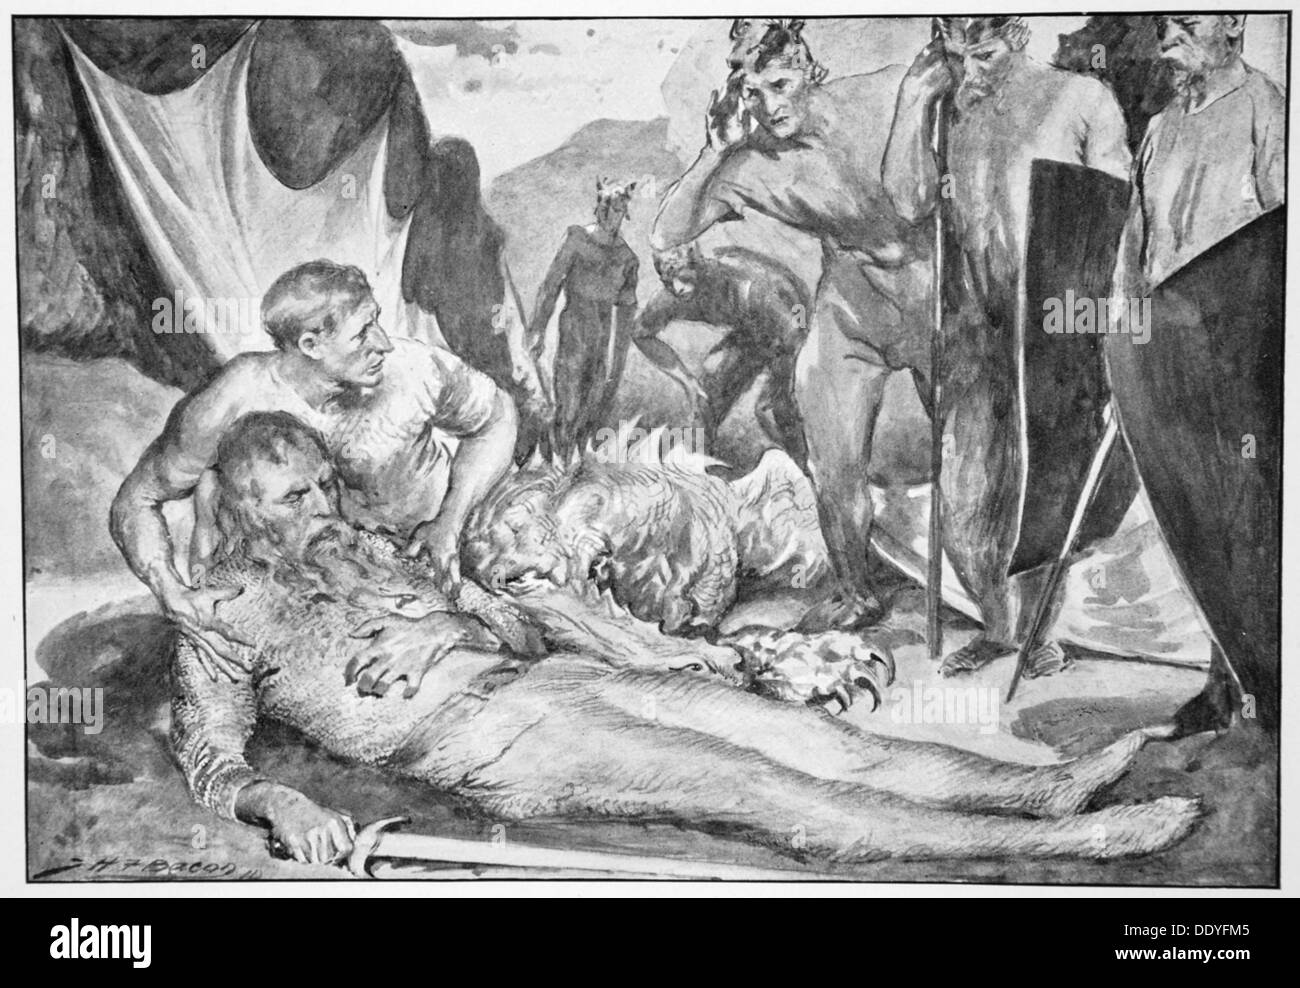 'The Death of Beowulf', 1910.  Artist: John Henry Frederick Bacon - Stock Image